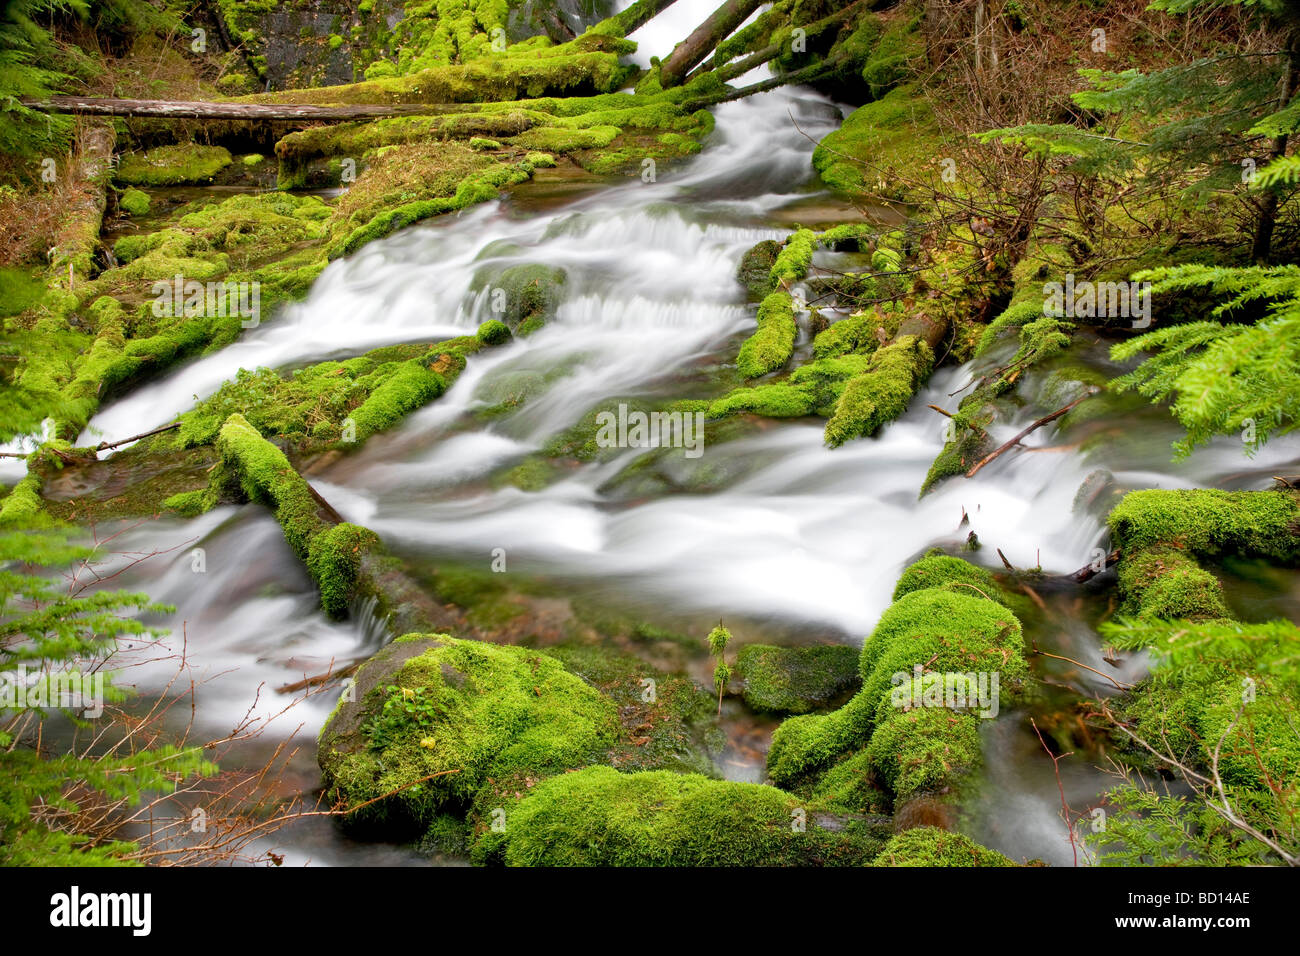 Big Spring Creek with mossy rocks Gifford Pinchot National forest Washington - Stock Image